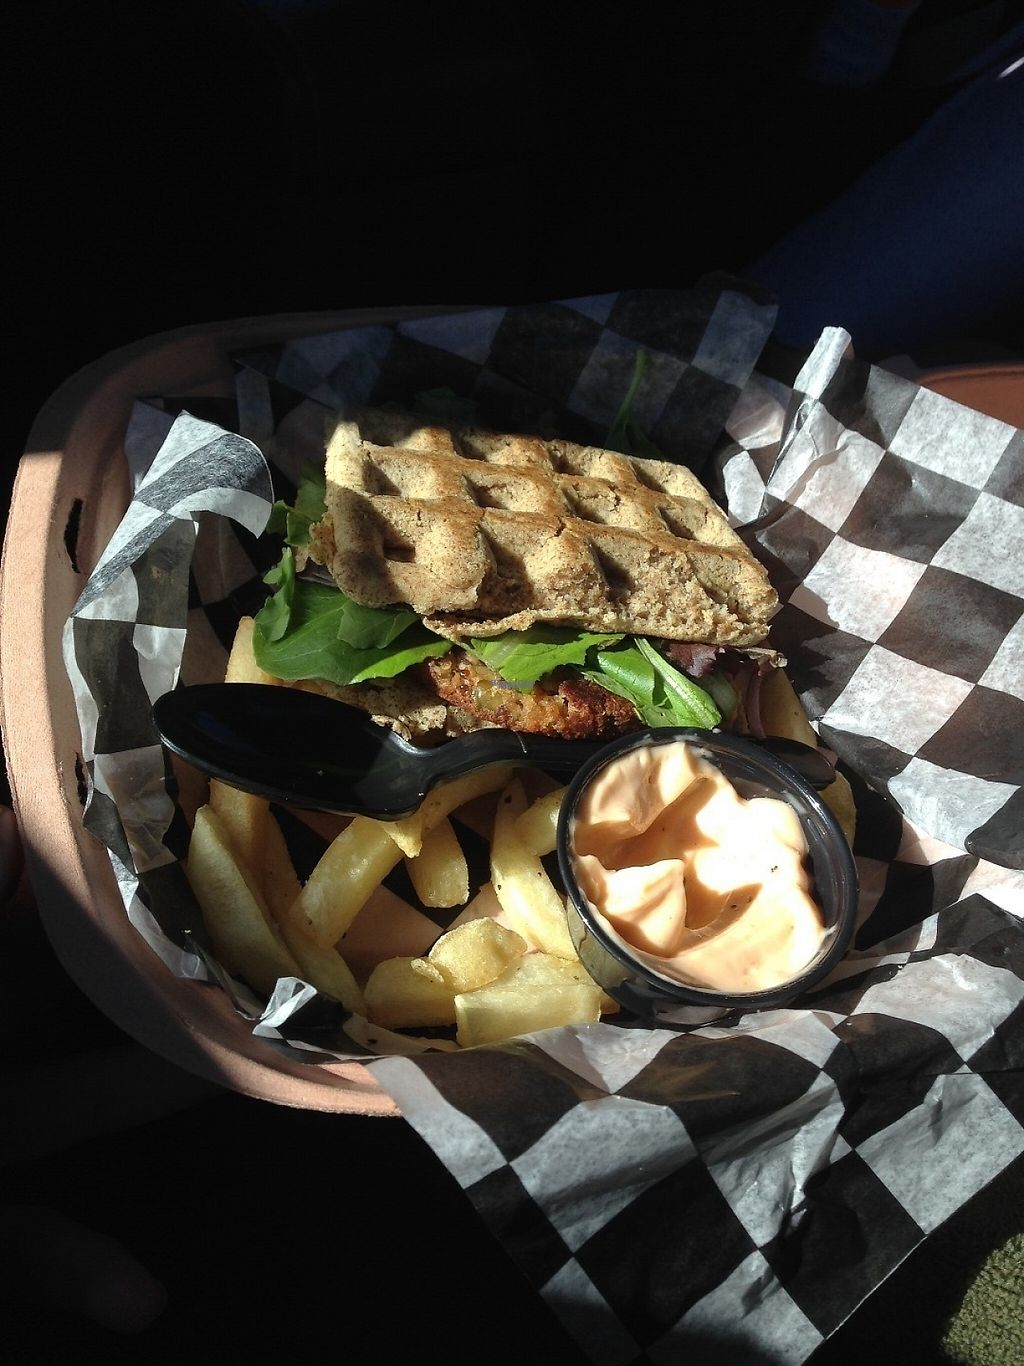 """Photo of Emergency Munchie Truck  by <a href=""""/members/profile/brooke____bear"""">brooke____bear</a> <br/>Waffle sandwich with vegan mayonnaise and fries <br/> April 18, 2017  - <a href='/contact/abuse/image/49019/249533'>Report</a>"""